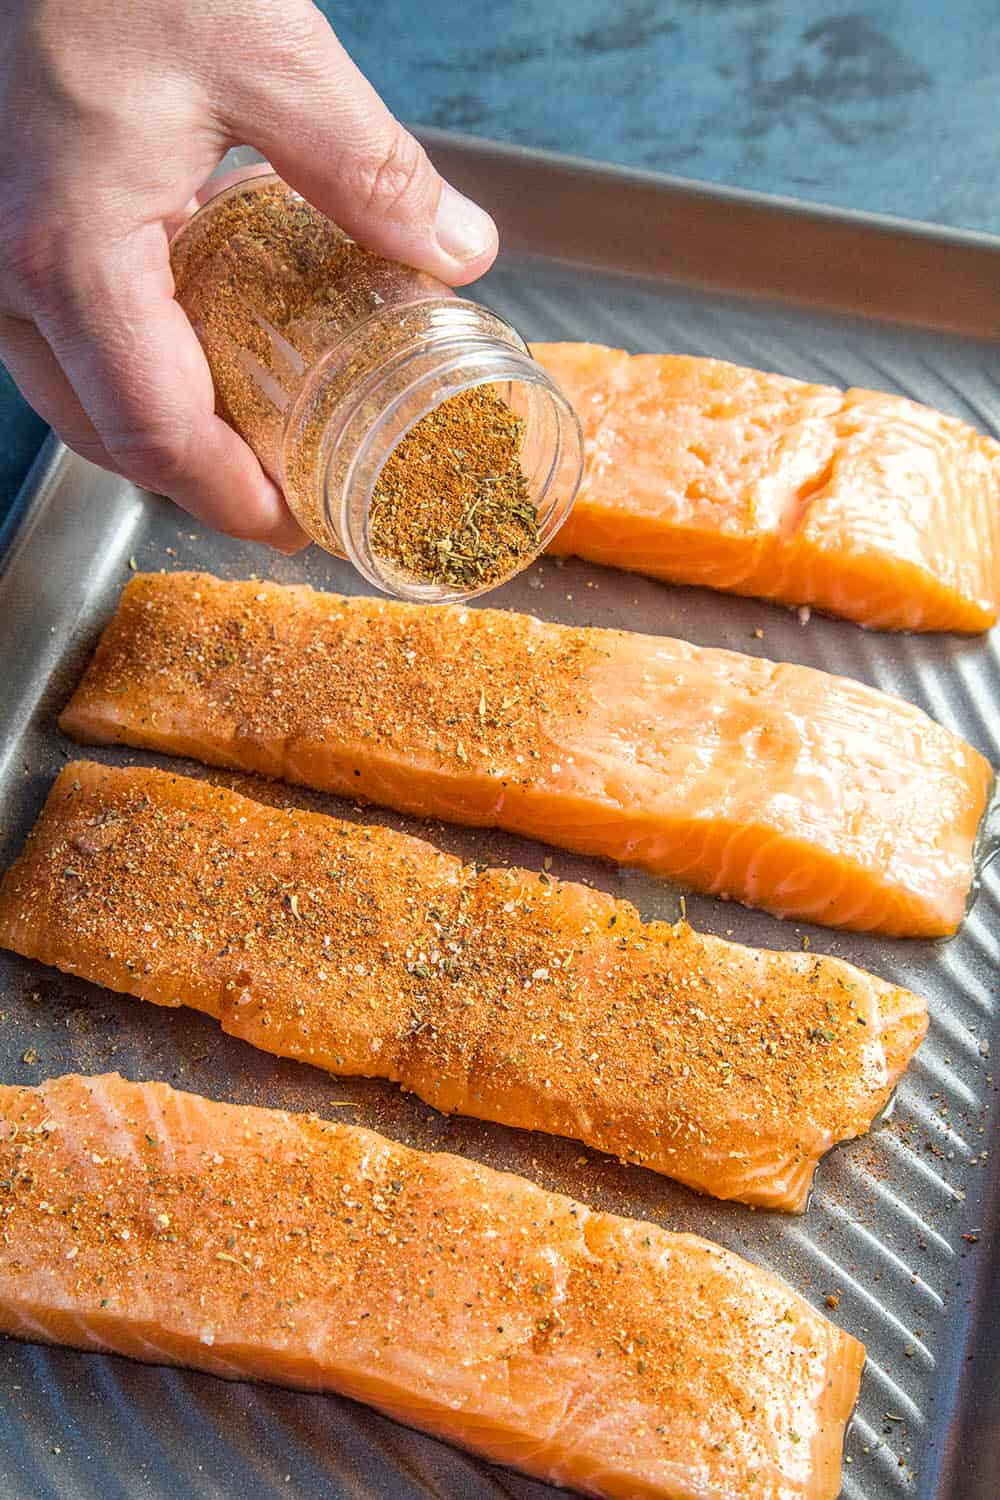 Seasoning the salmon with blackening seasoning